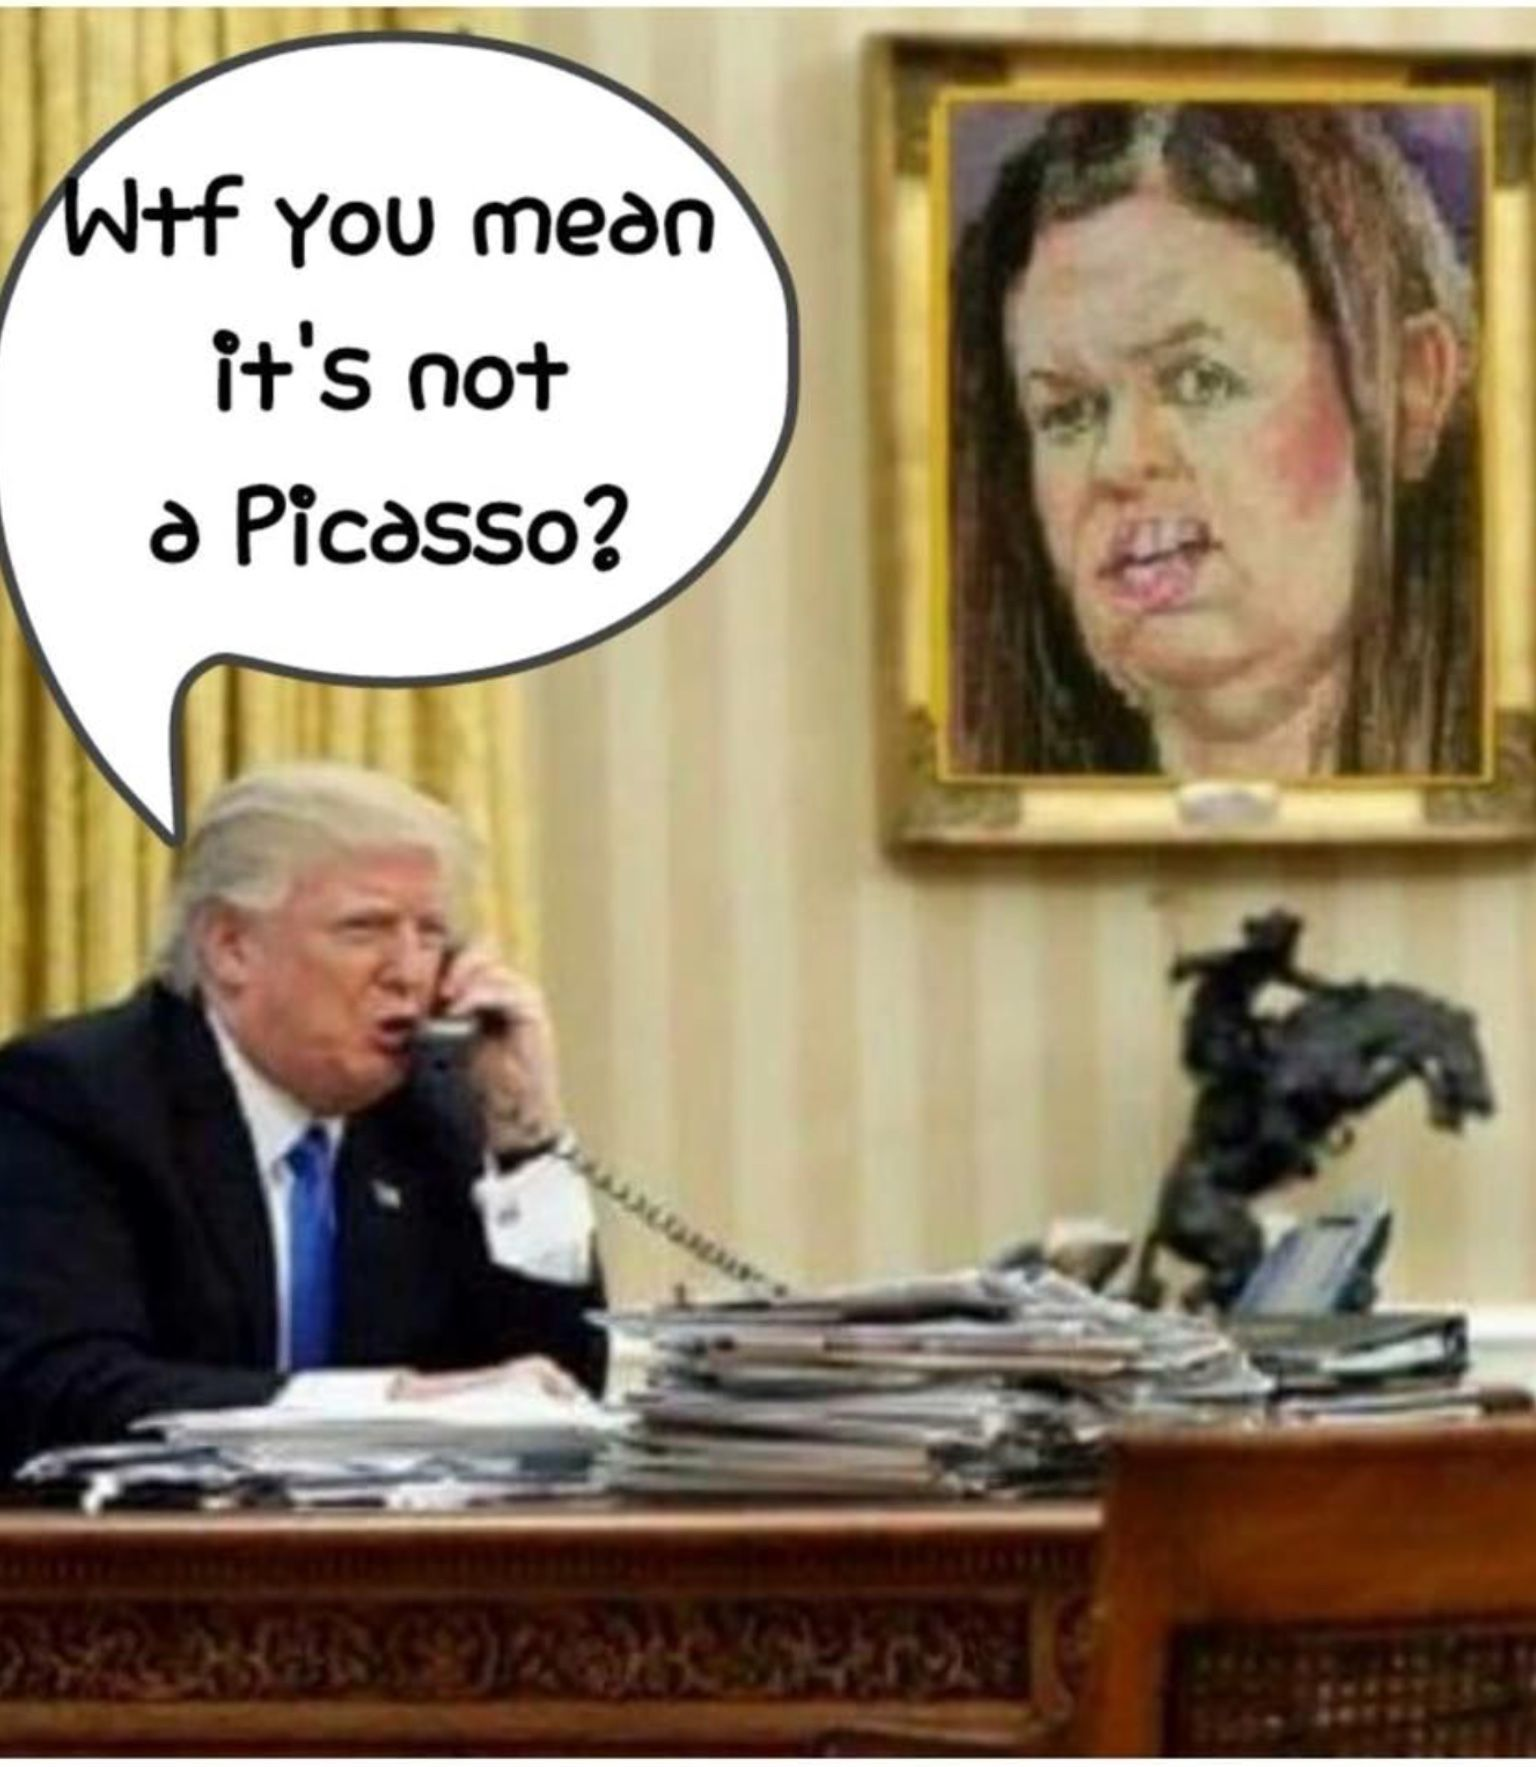 089c31e05b80 Great likeness of Sara The Cow!! If she didn t tell so many Lies standing  at that podium